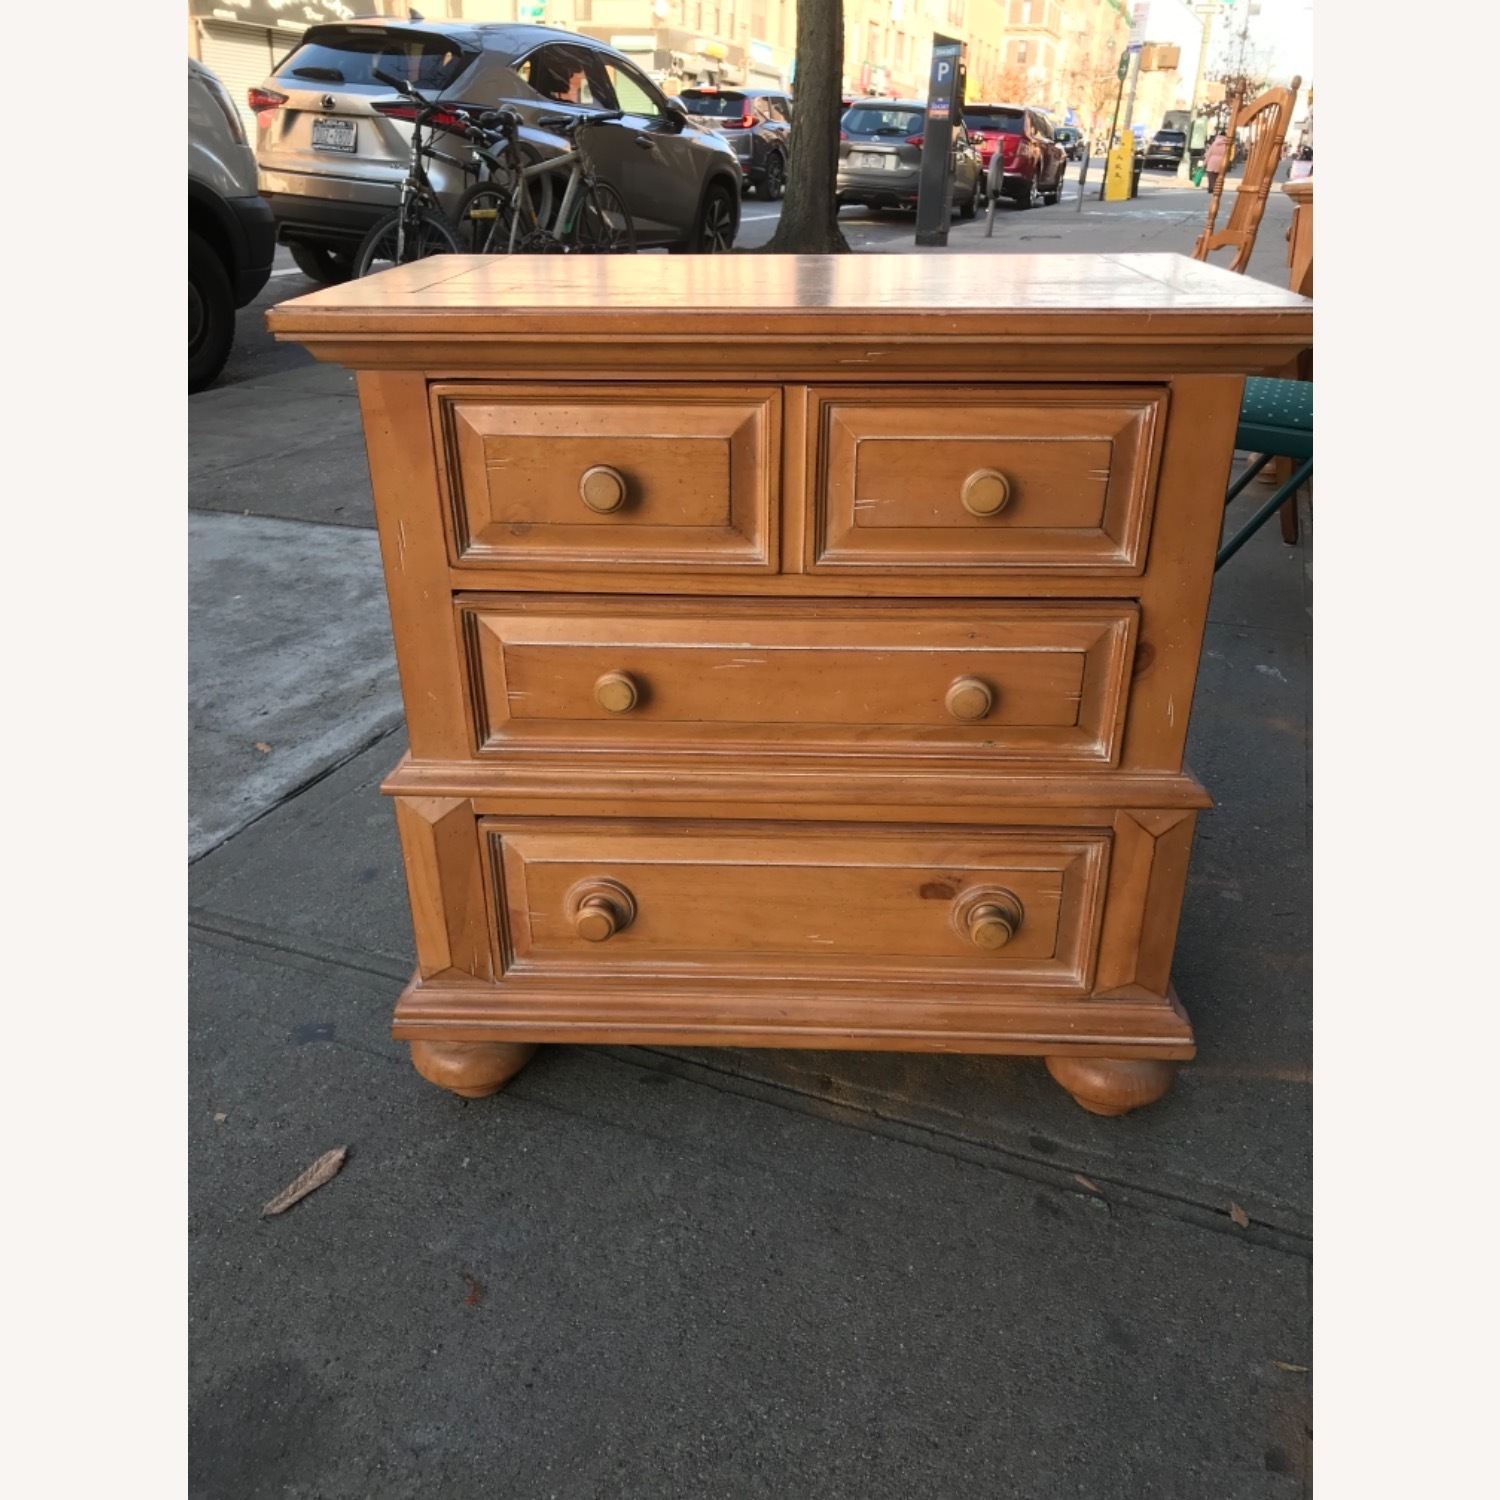 Broyhill Furniture Solid Wood Nightstand - image-1